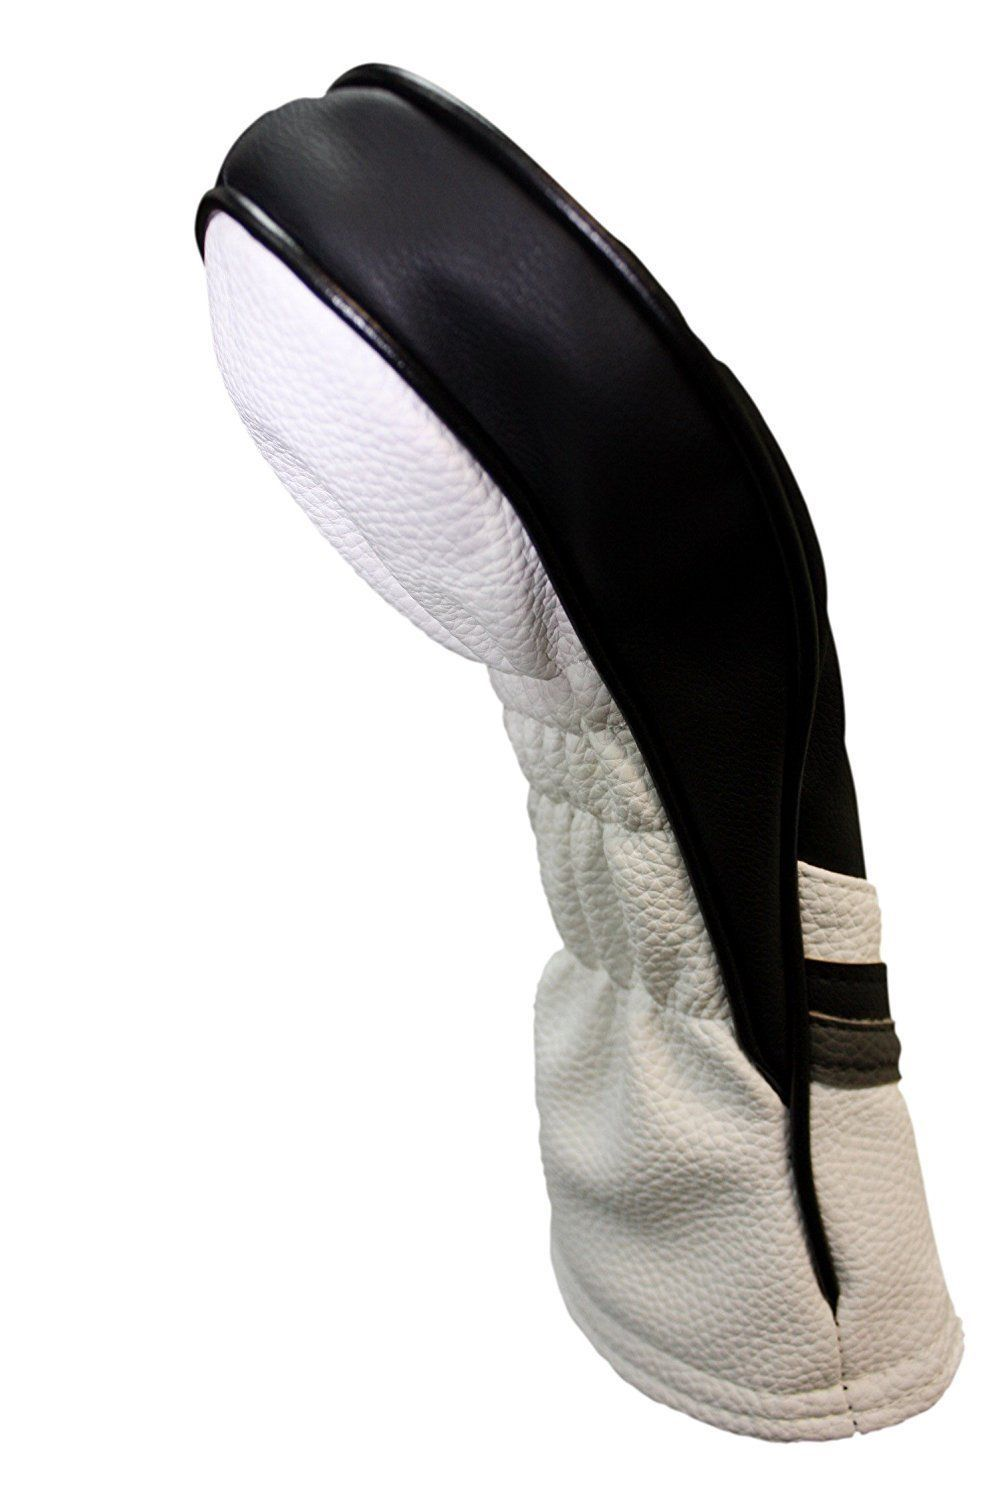 Majek Golf Headcover Black and White Leather Style #9 Hybrid Head Cover